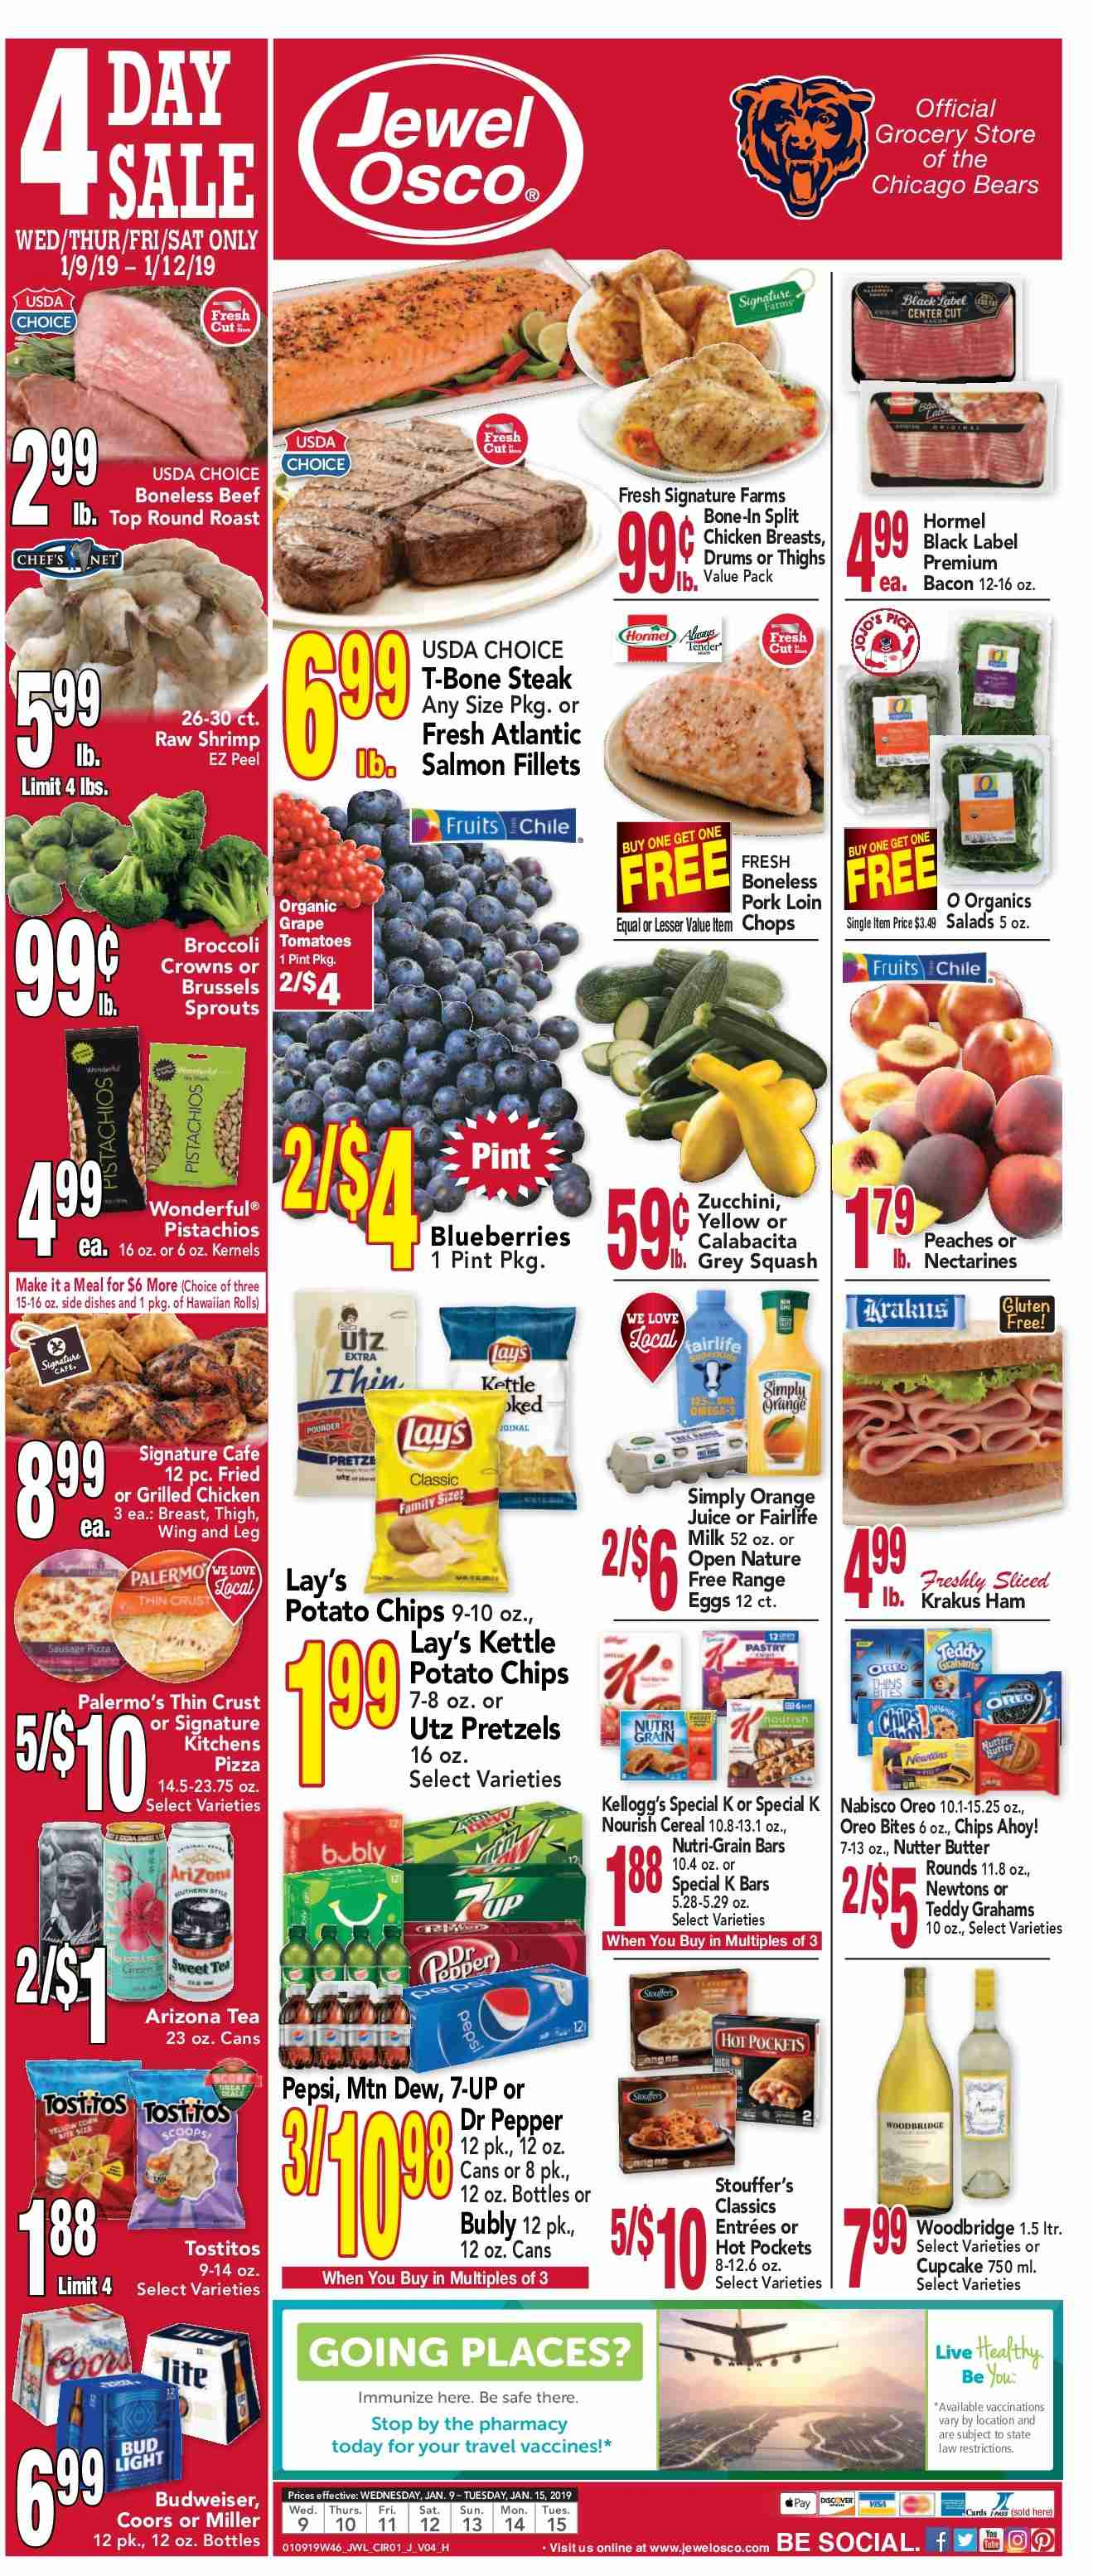 Jewel Osco Flyer - 01.09.2019 - 01.15.2019 - Sales products - bacon, beef meat, blueberries, broccoli, brussels sprouts, budweiser, butter, cupcake, cupcakes, grapes, milk, nectarines, safe, salmon, shrimp, squash, t-bone steak, tea, tomatoes, ham, hot pocket, pork loin, pork meat, potato chips, pretzels, chicken, chicken breast, peaches, pepsi, oreo, chips, steak, juice, pepper, bud light, lay's. Page 1.